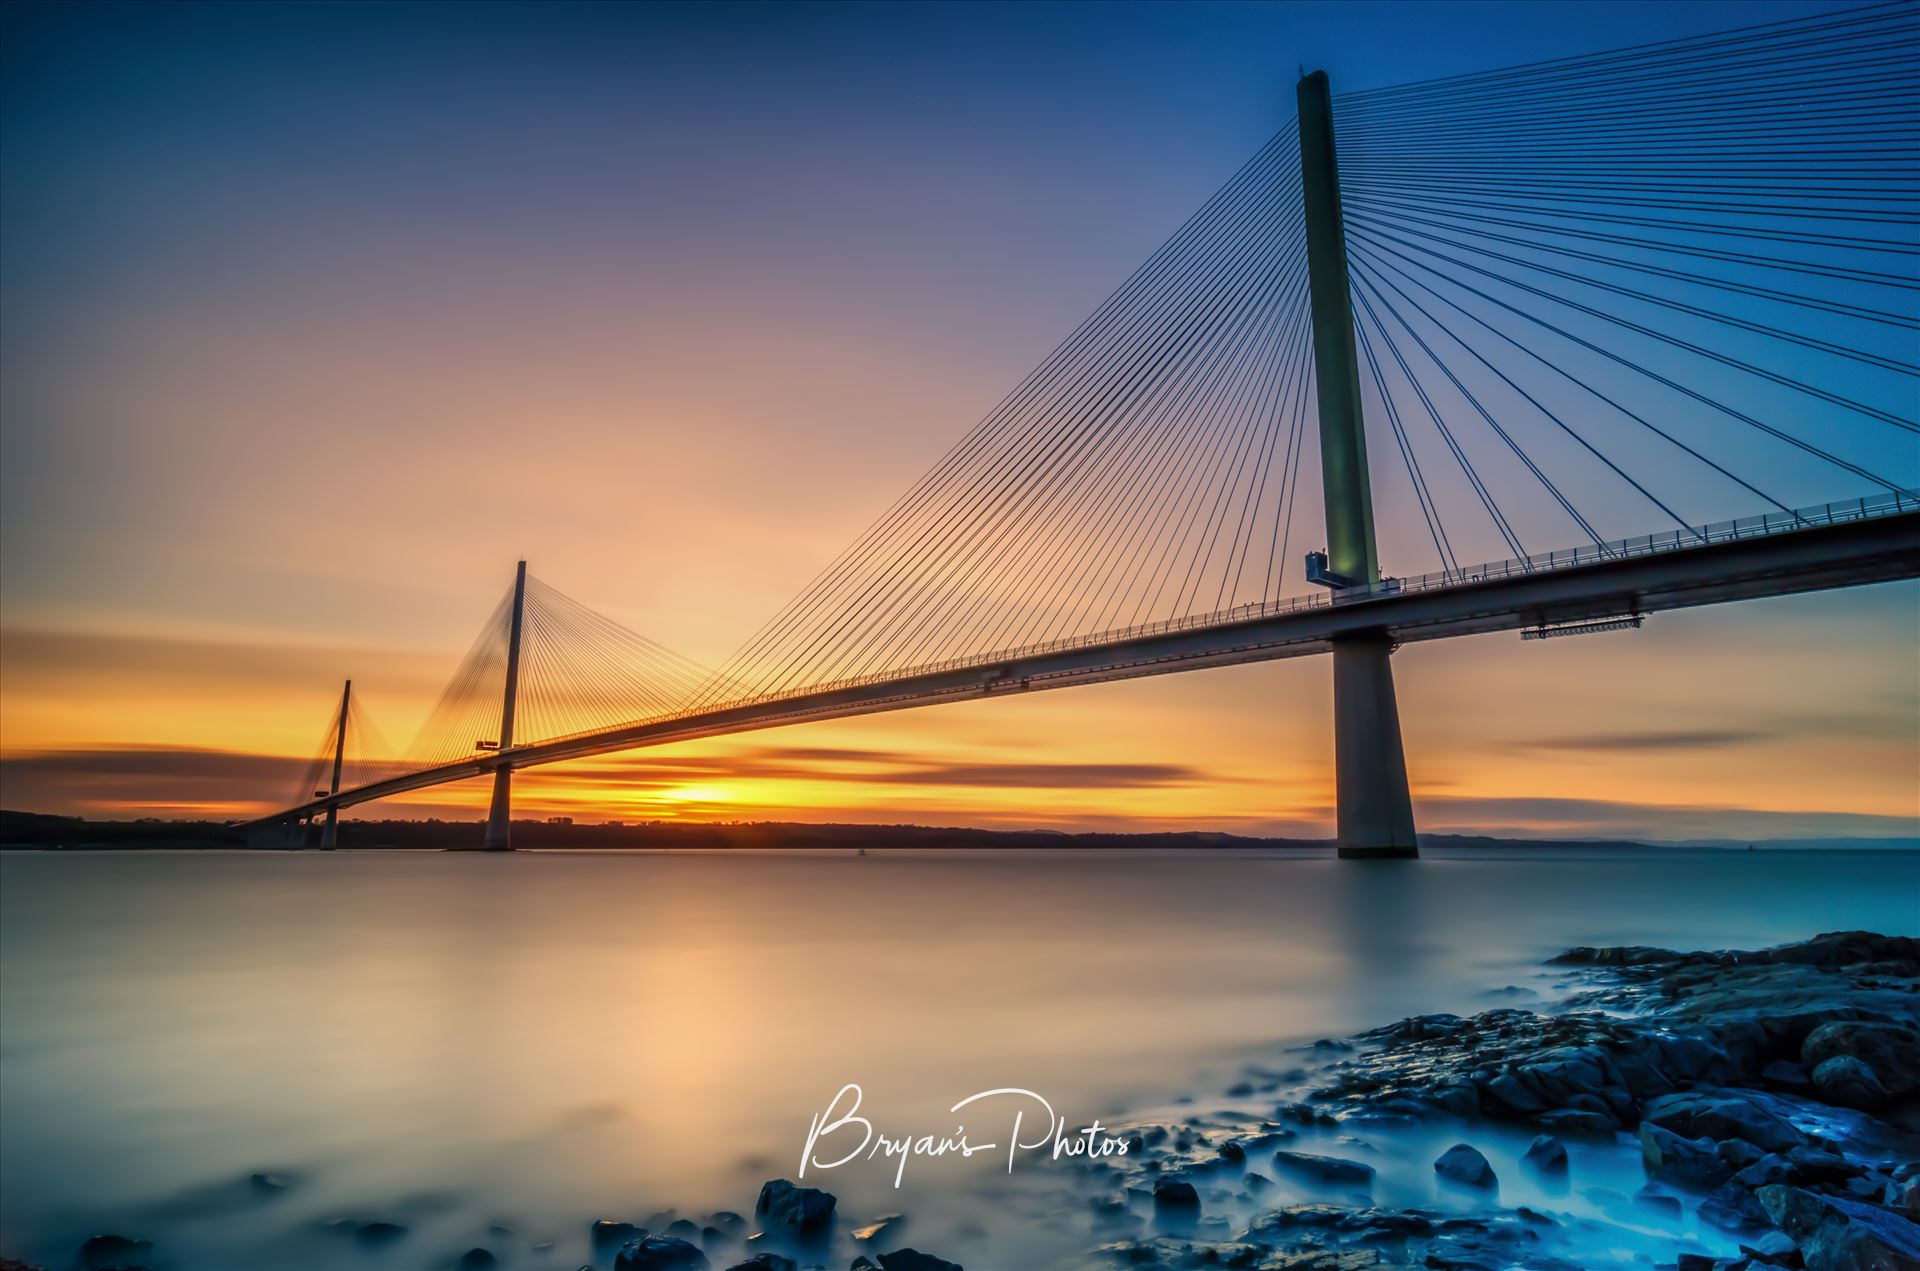 Queensferry Sunset A long exposure photograph of the Queensferry Crossing taken from North Queensferry on the Fife Coast. by Bryans Photos